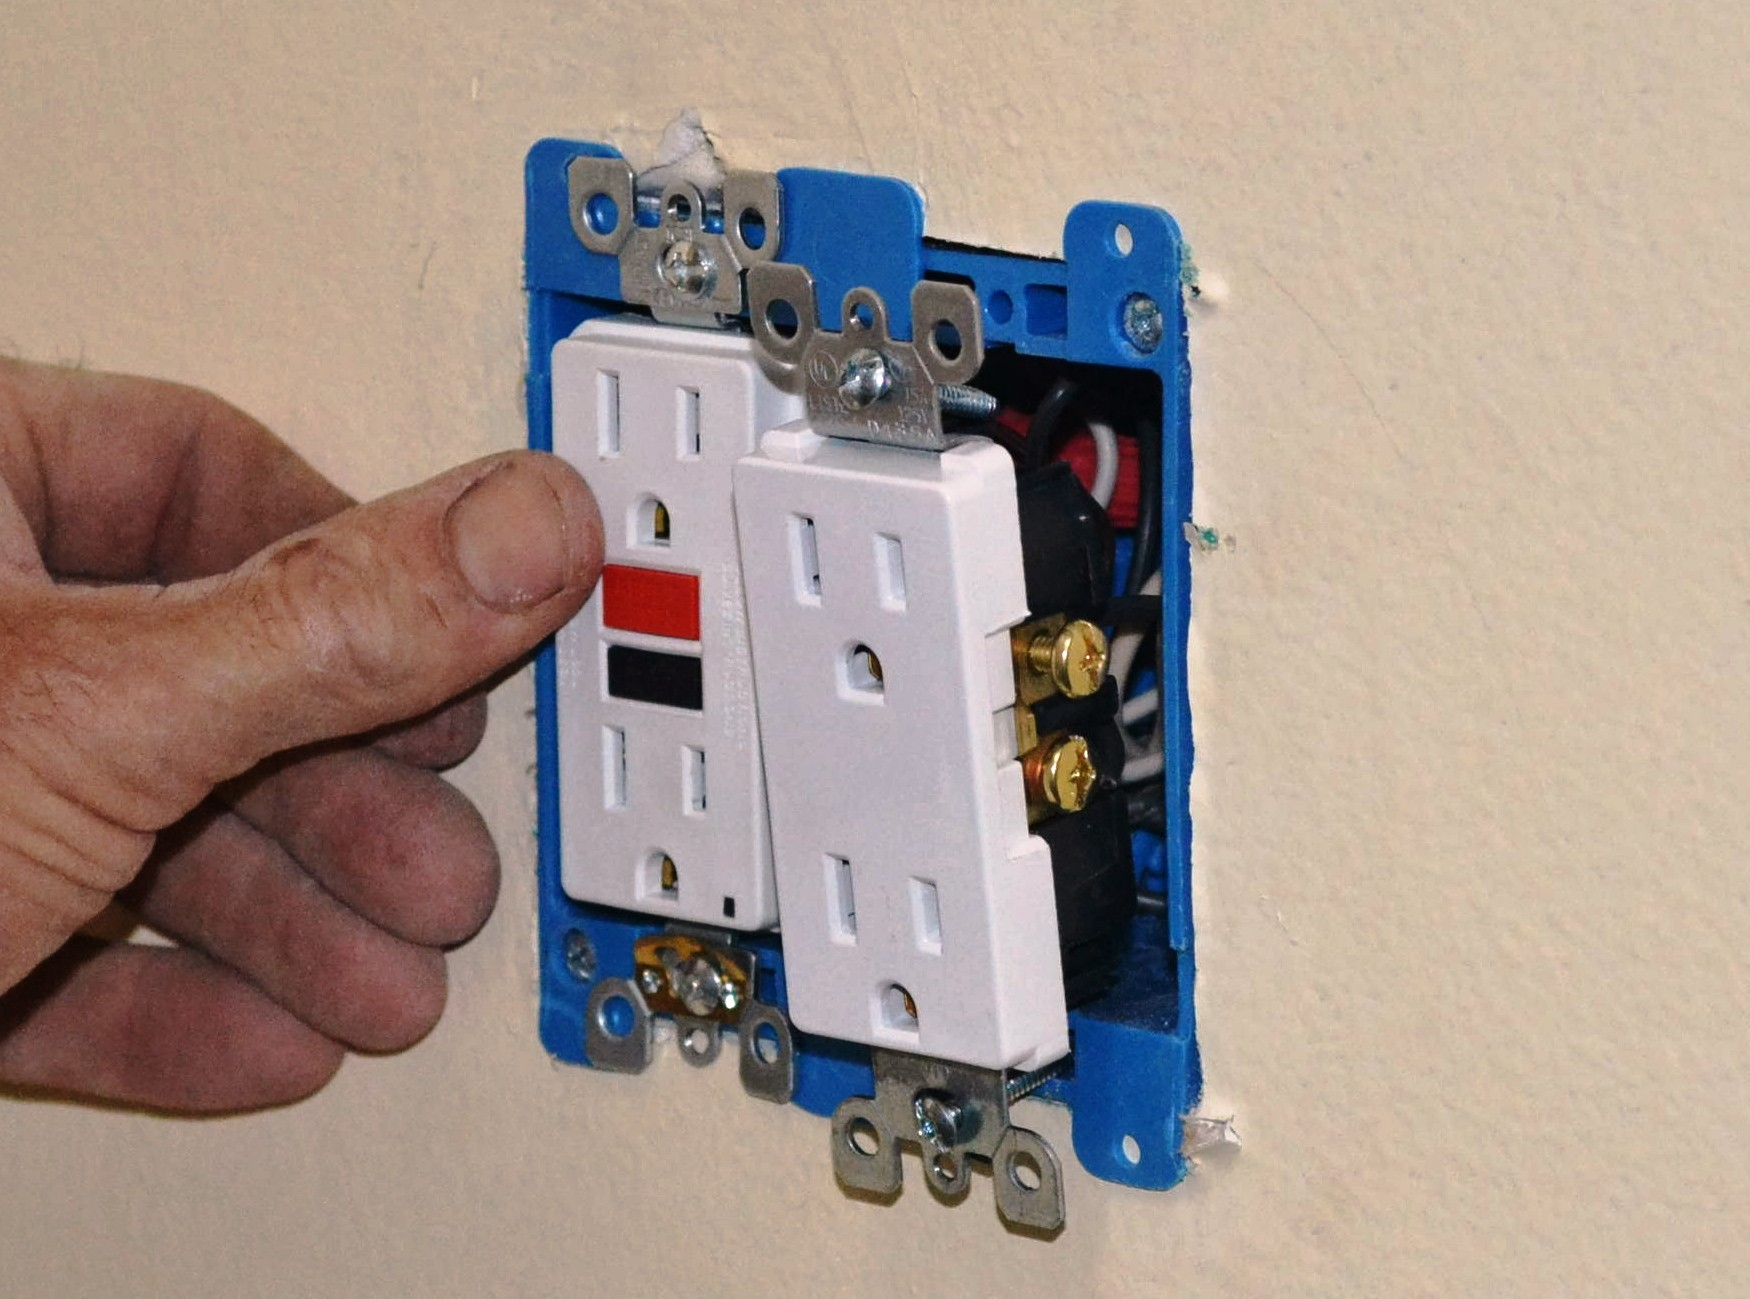 Wiring A Double Gang Outlet Box Trusted Diagram Converting 2 Socket To 4 Sockets Pro Construction Guide Swiitches